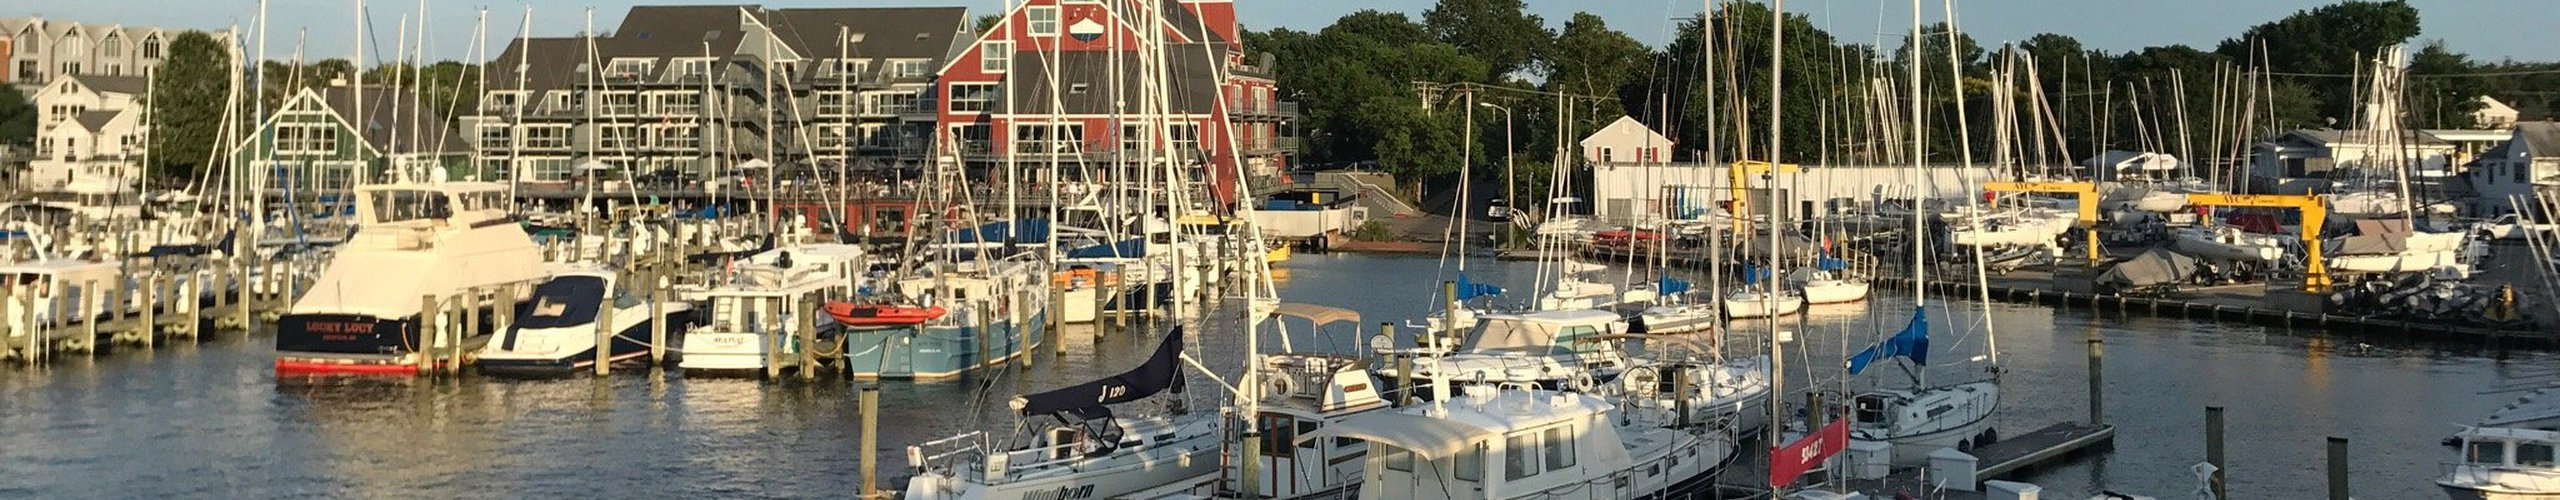 PRIVATE PLEASURE HARBORVIEW BOAT AND BREAKFAST - B&B Reviews